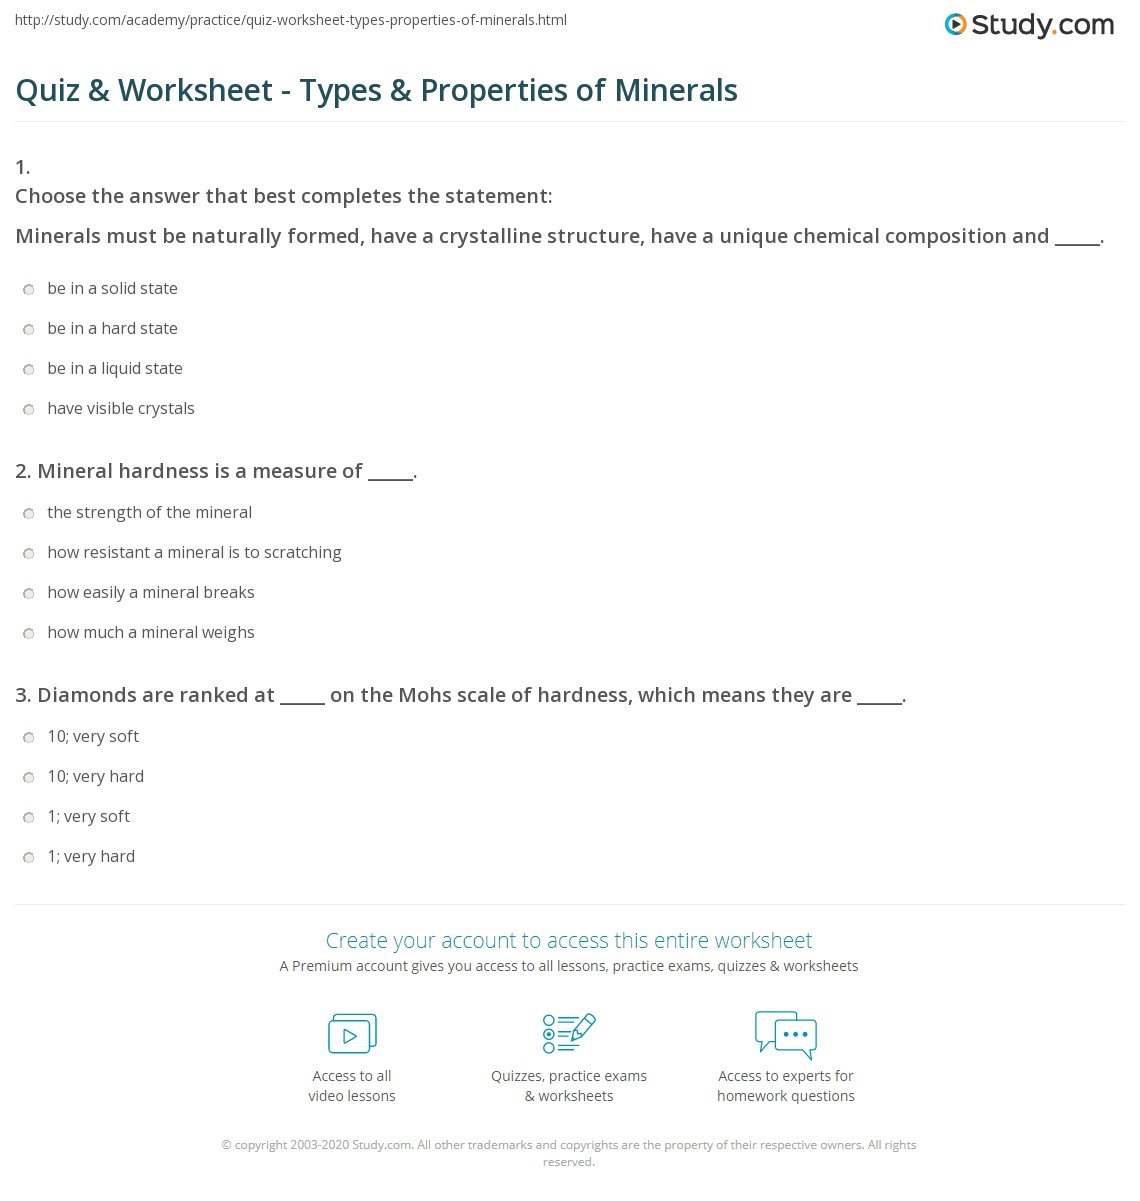 quiz worksheet types properties of minerals com already registered login here for access